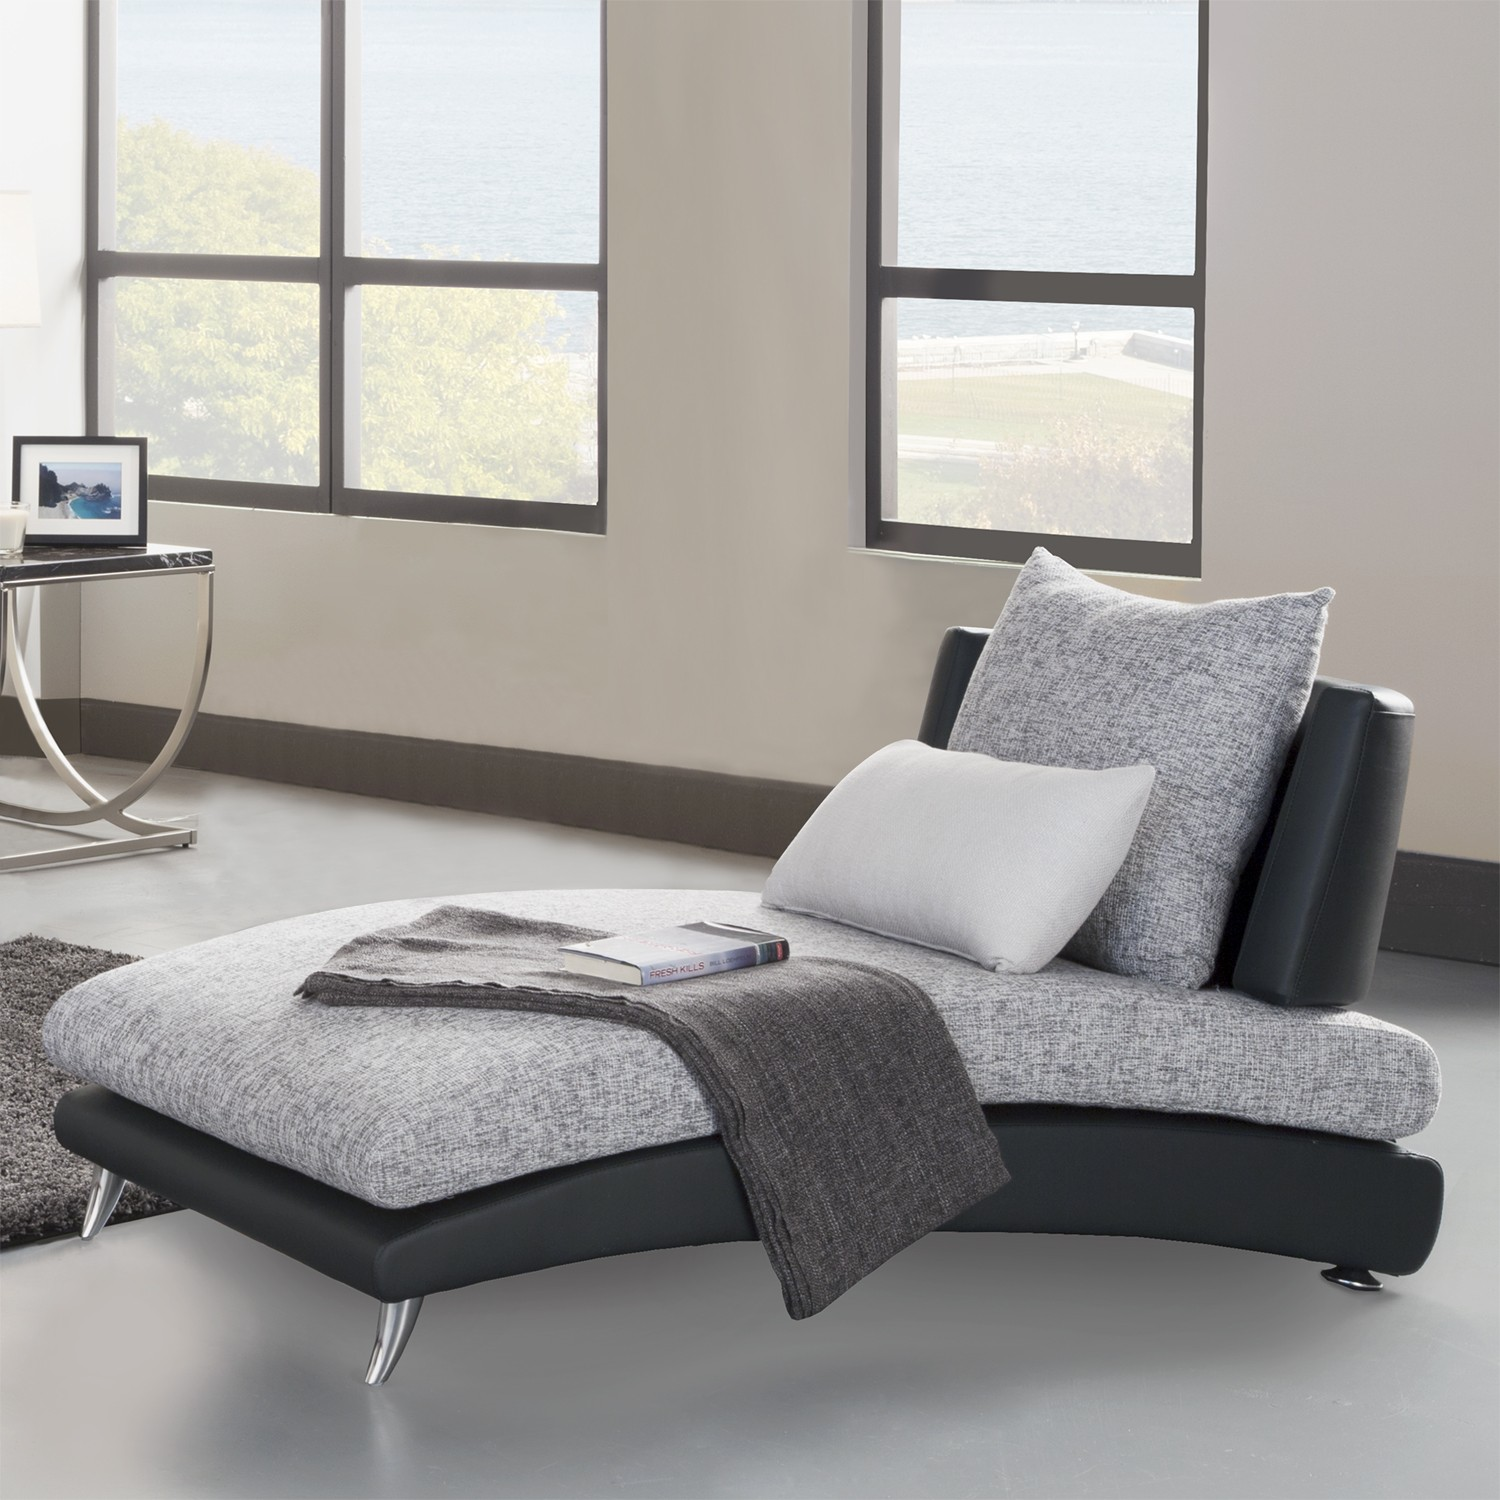 looking bedroom chaise lounge chairshome design ideas